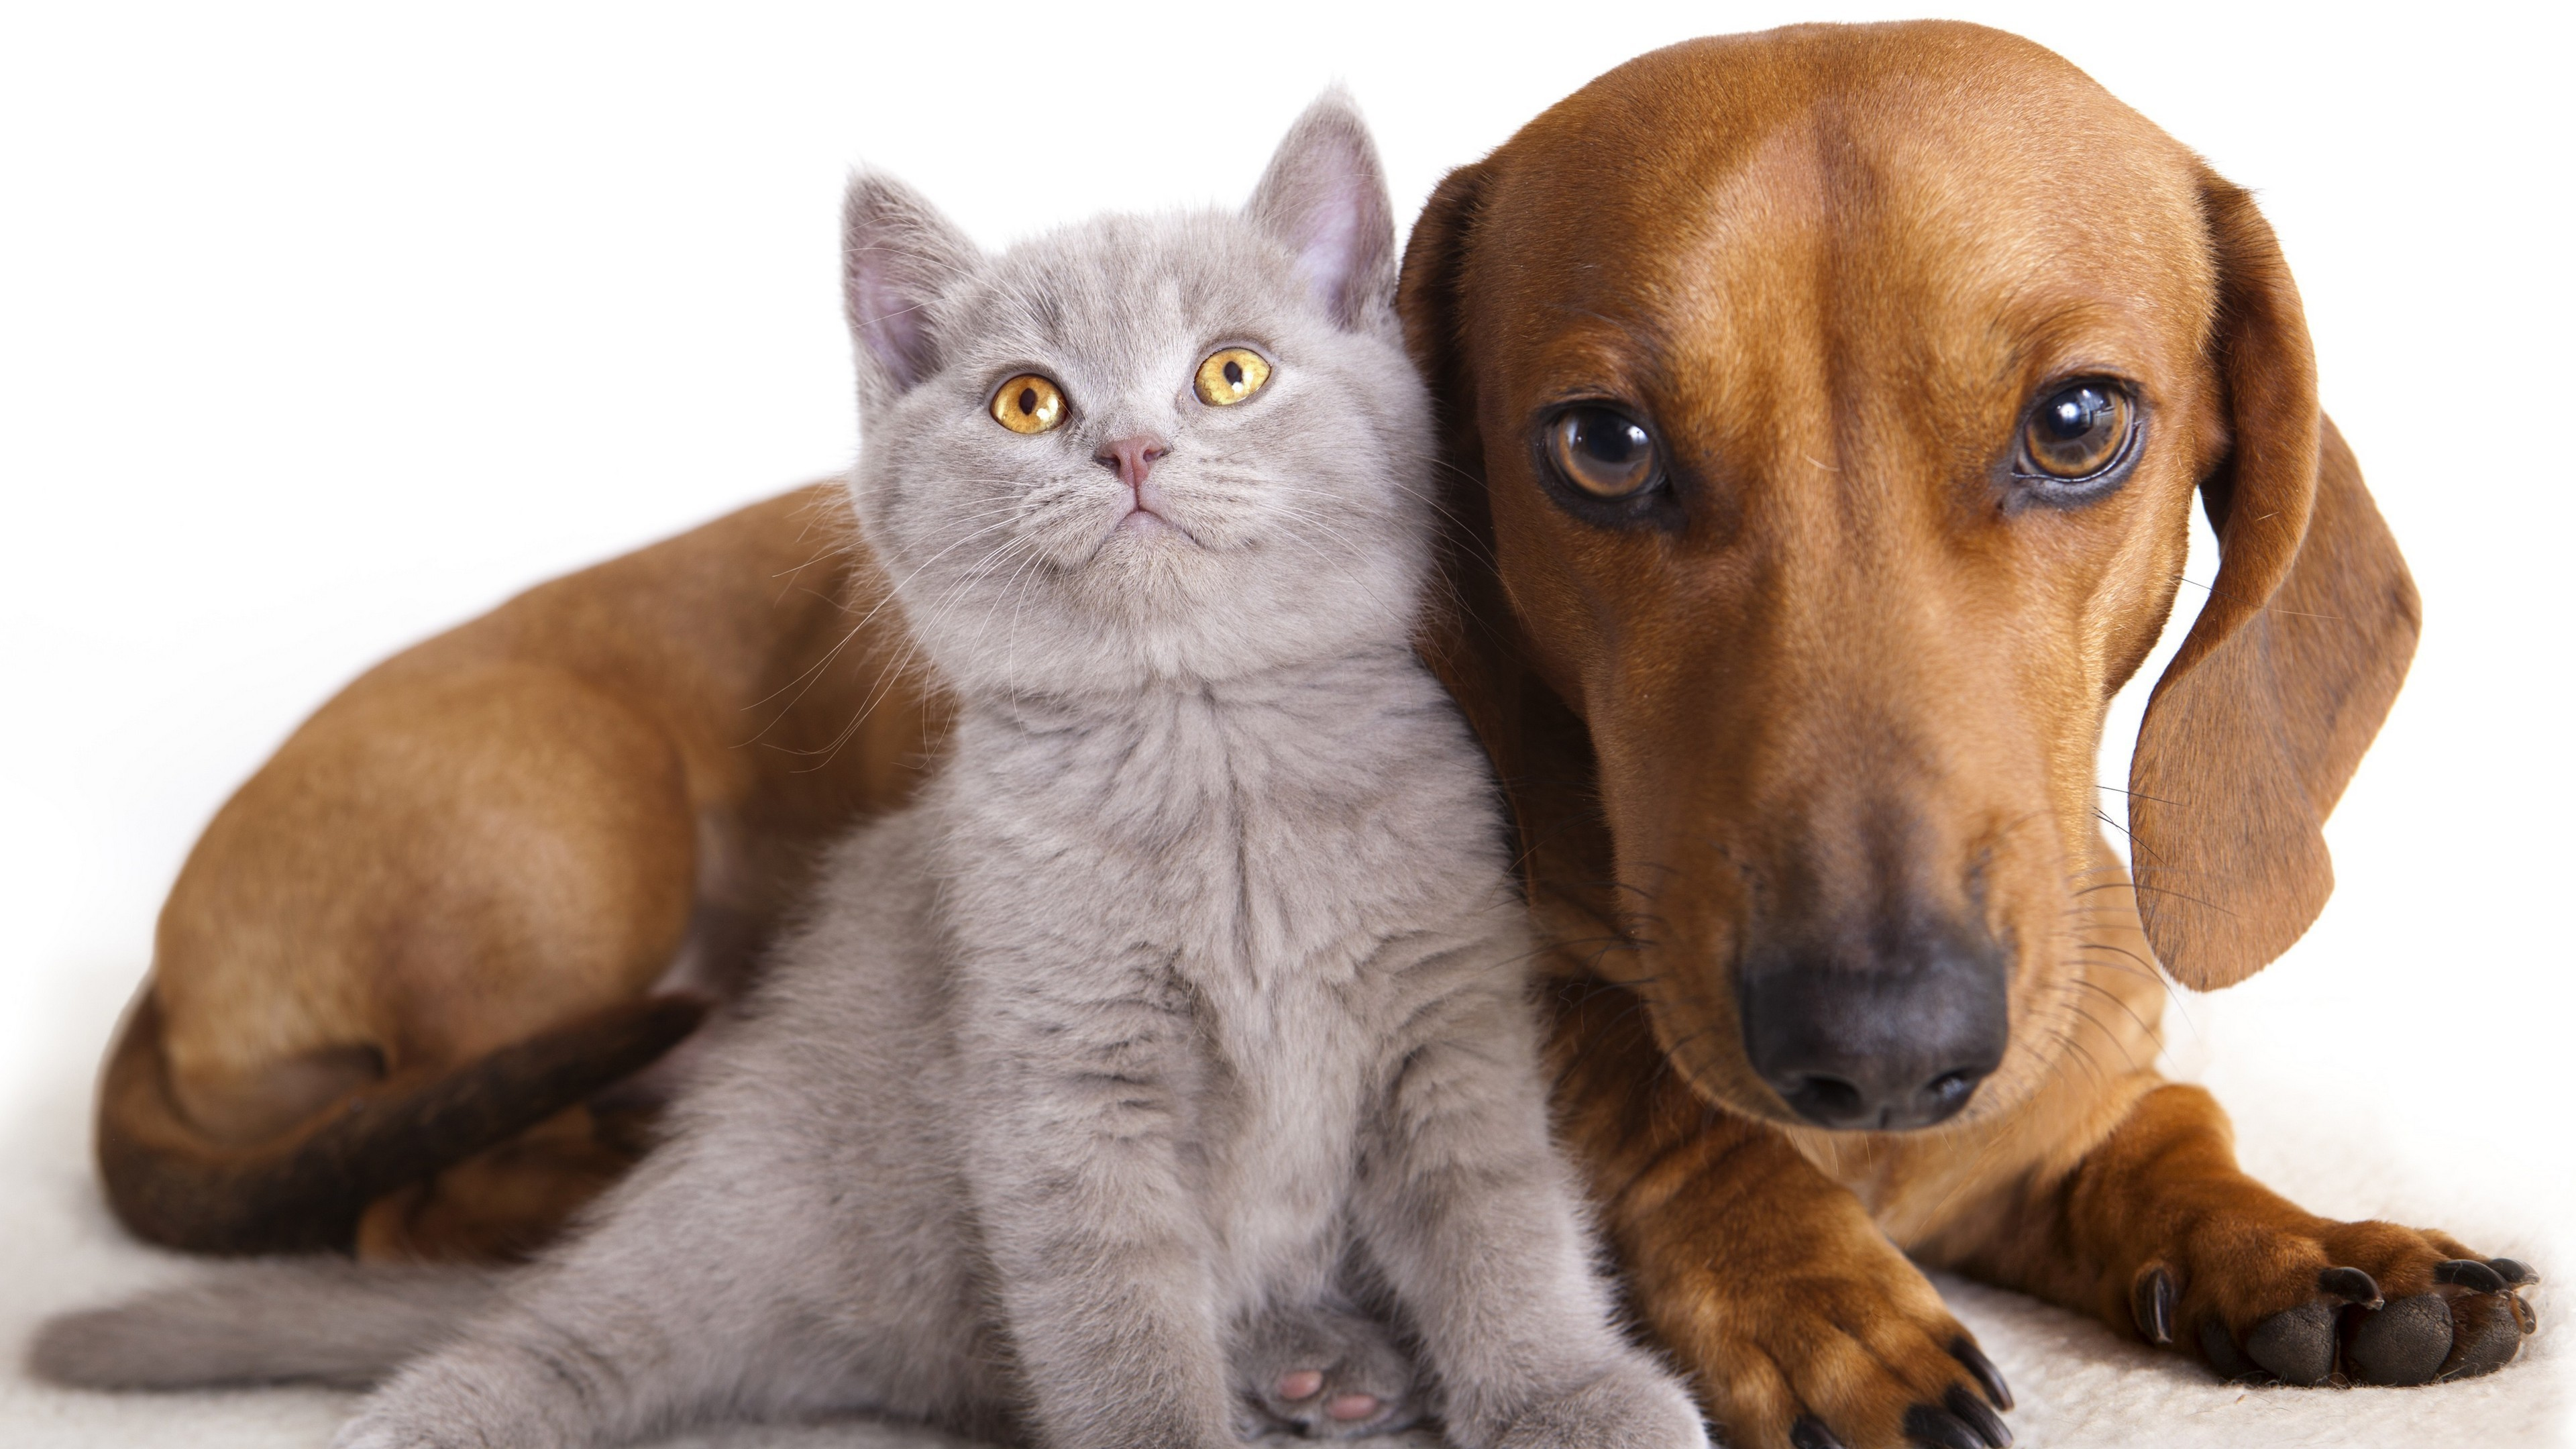 2400x1800 Cat Dog Wallpapers 15